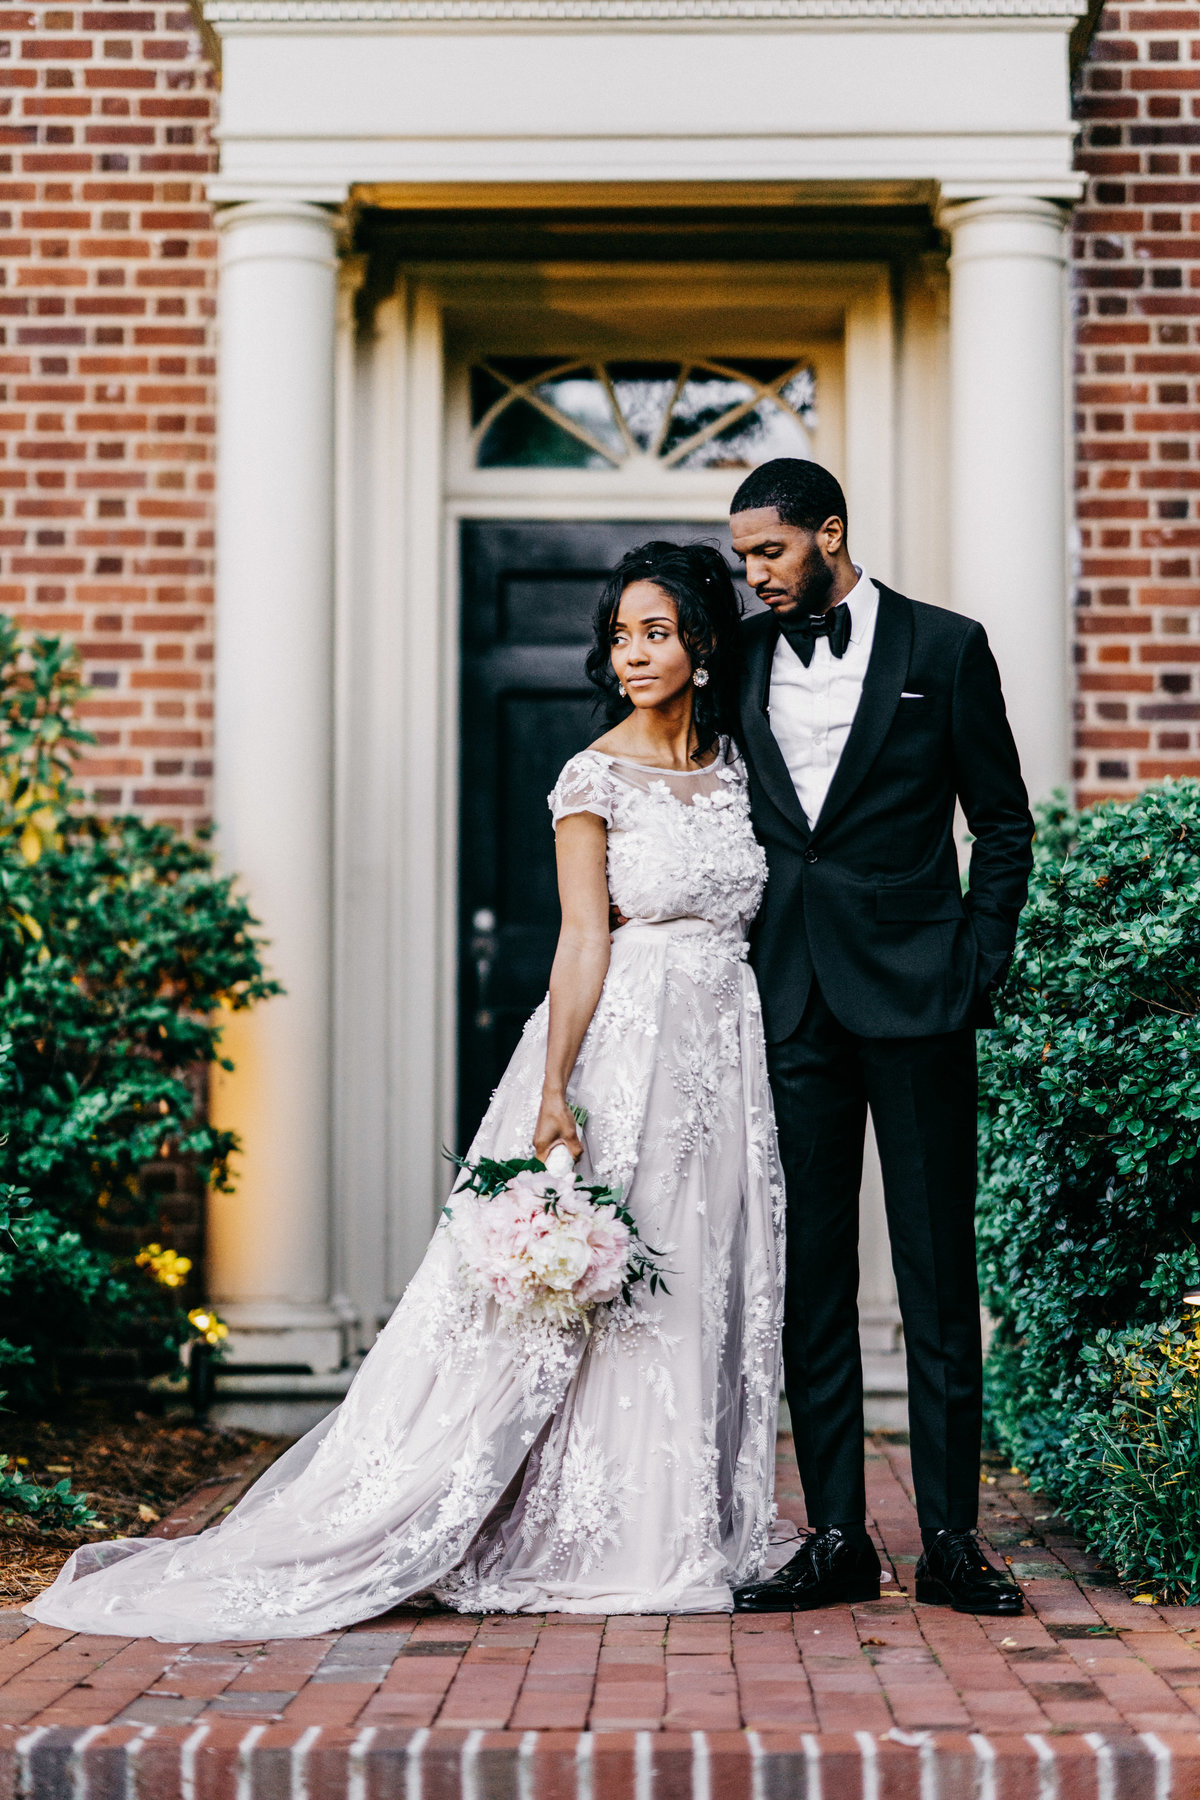 charisma_marcus_carolina_inn_wedding_chapel_hill_2017-398-2-2